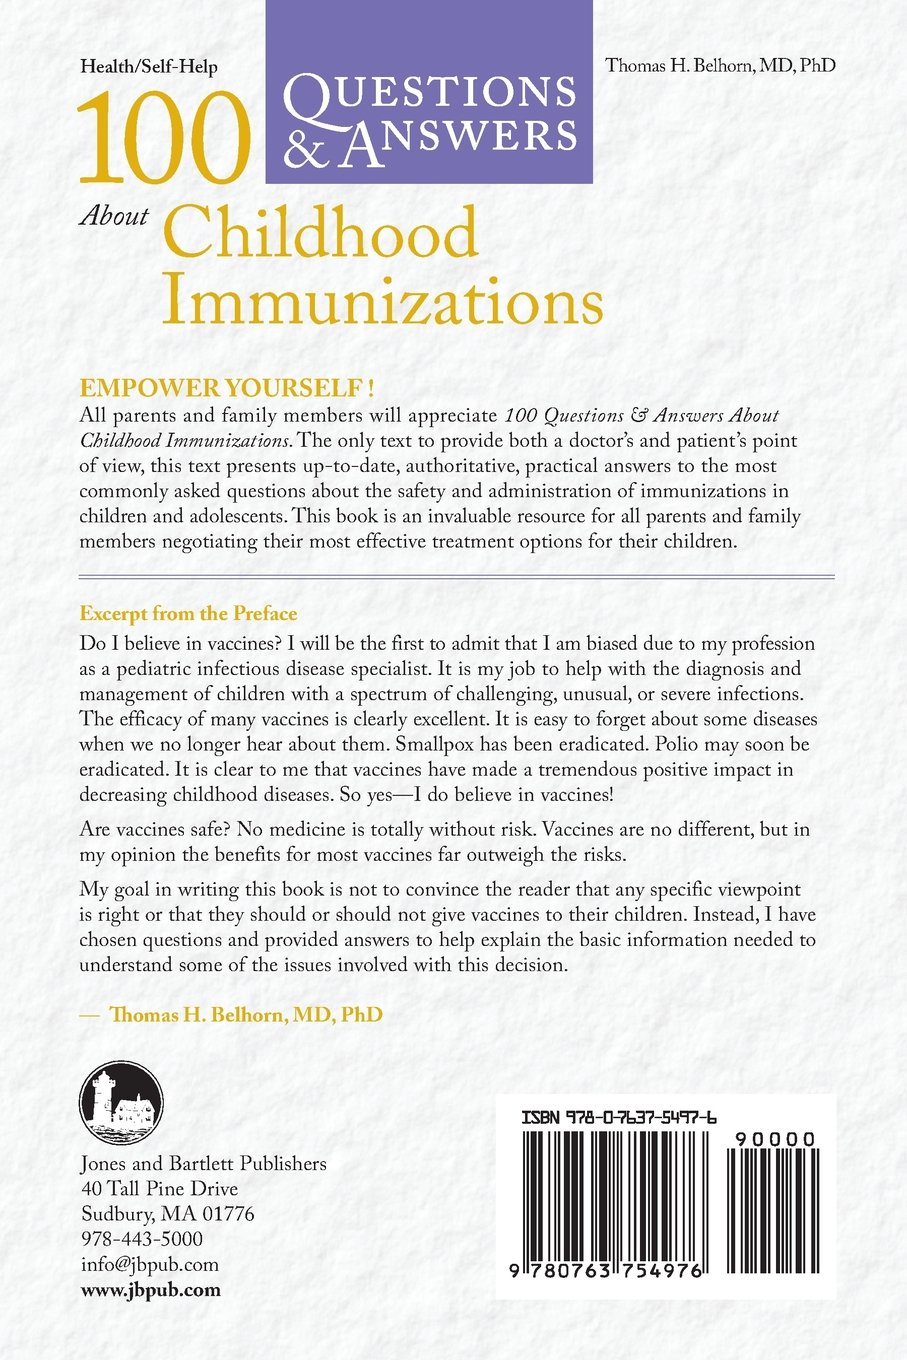 100 Questions & Answers About Childhood Immunizations: Thomas H. Belhorn:  9780763754976: Amazon.com: Books